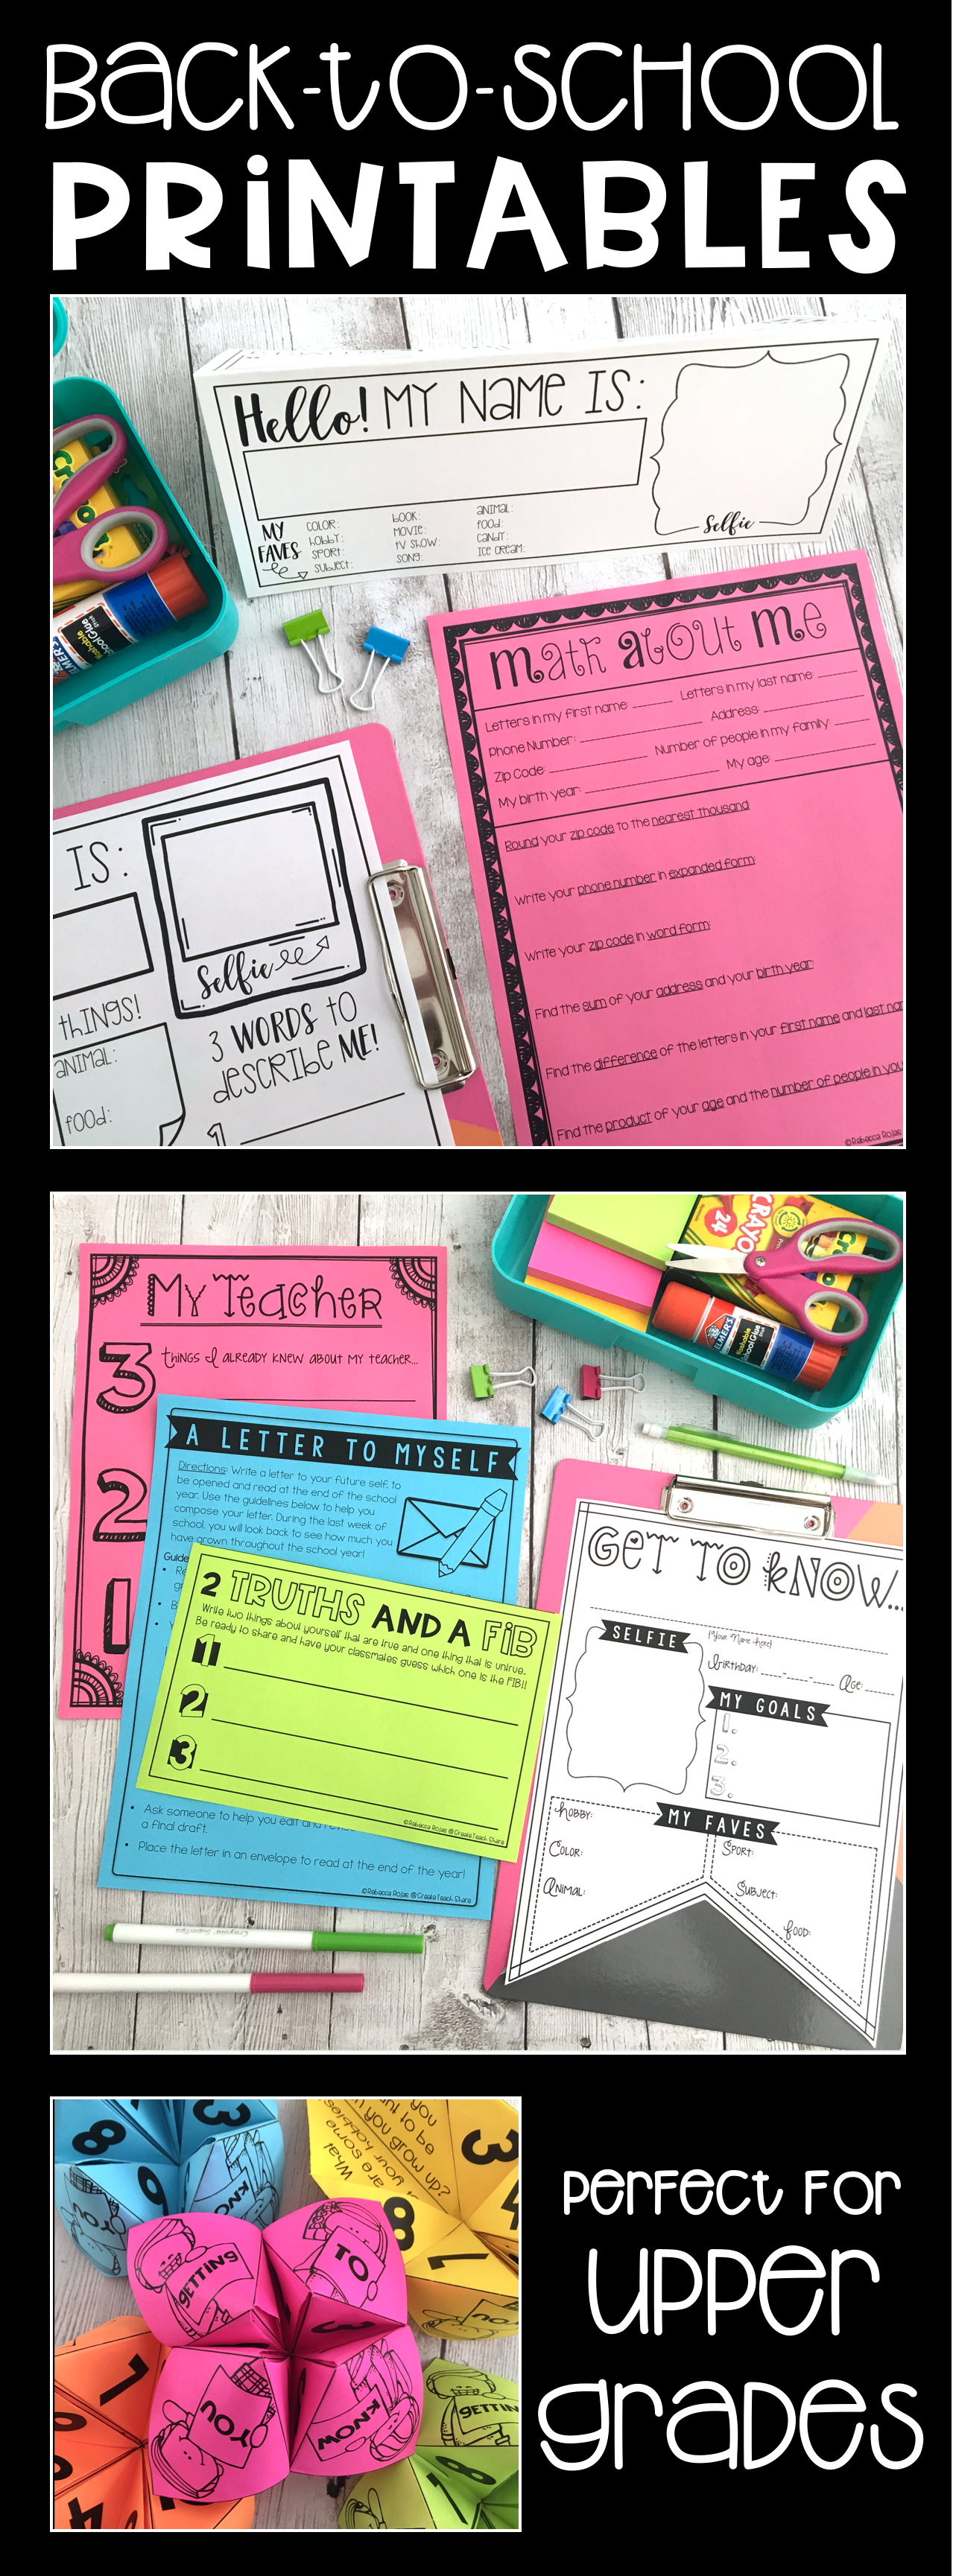 Back To School Printables For Those First Weeks Of School Lots Of Ideas And Activities For